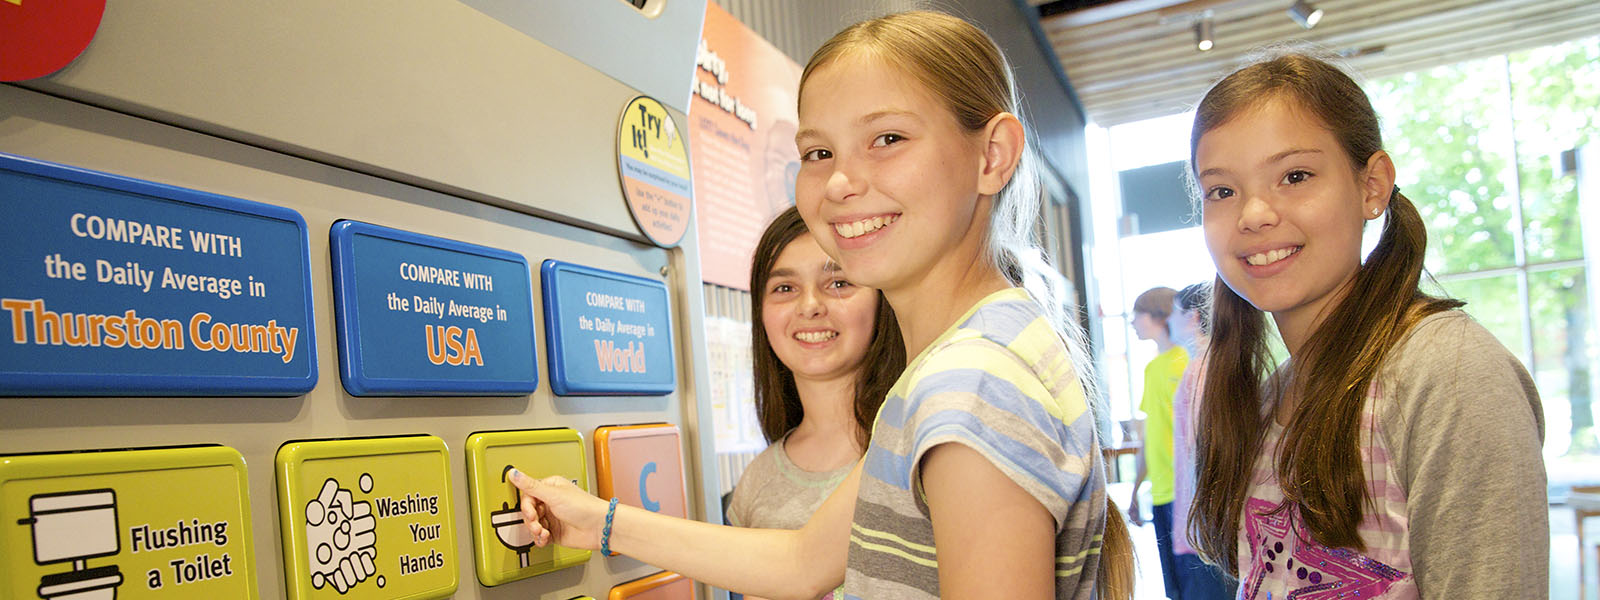 Image of three girls learning at a kiosk in the WET Science Center